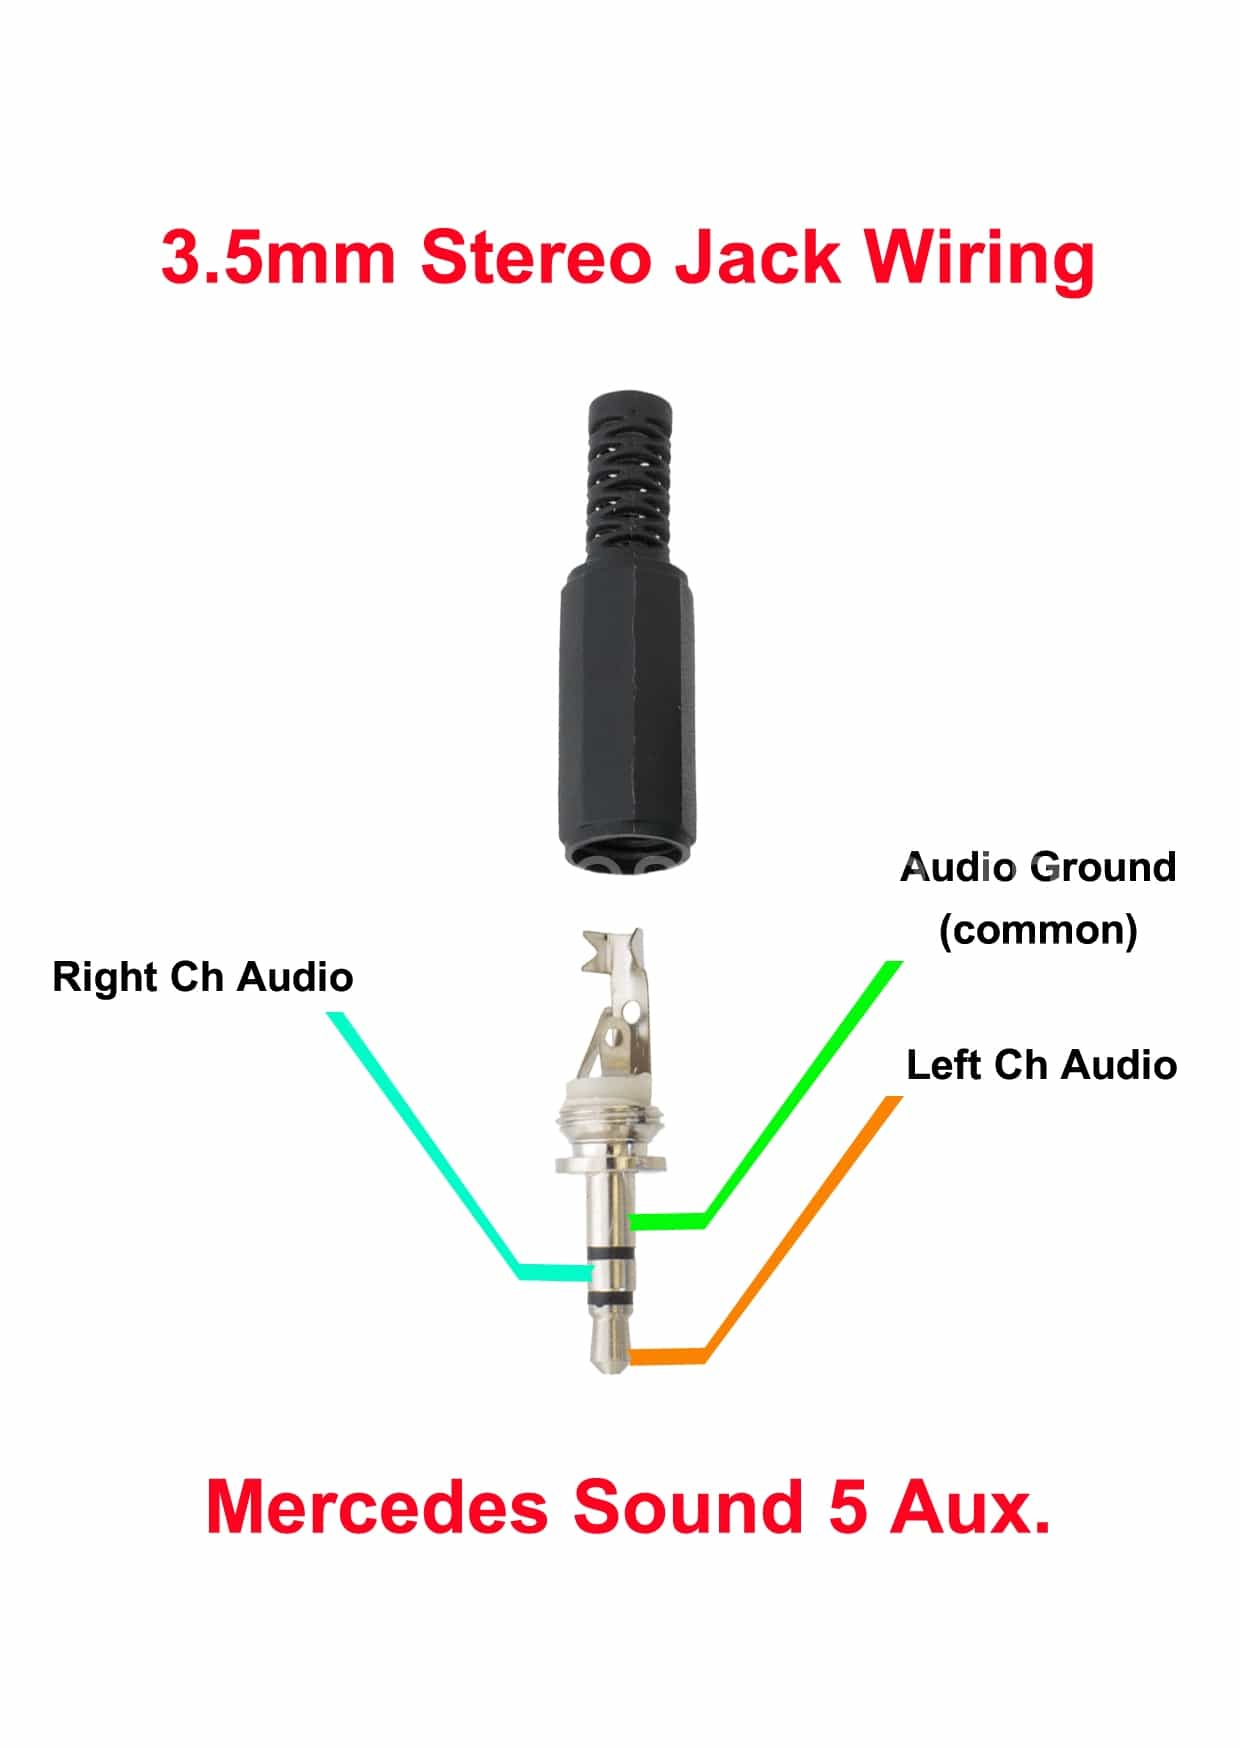 Mini Headphone Jack Wiring - Wiring Diagram - Trs Wiring Diagram